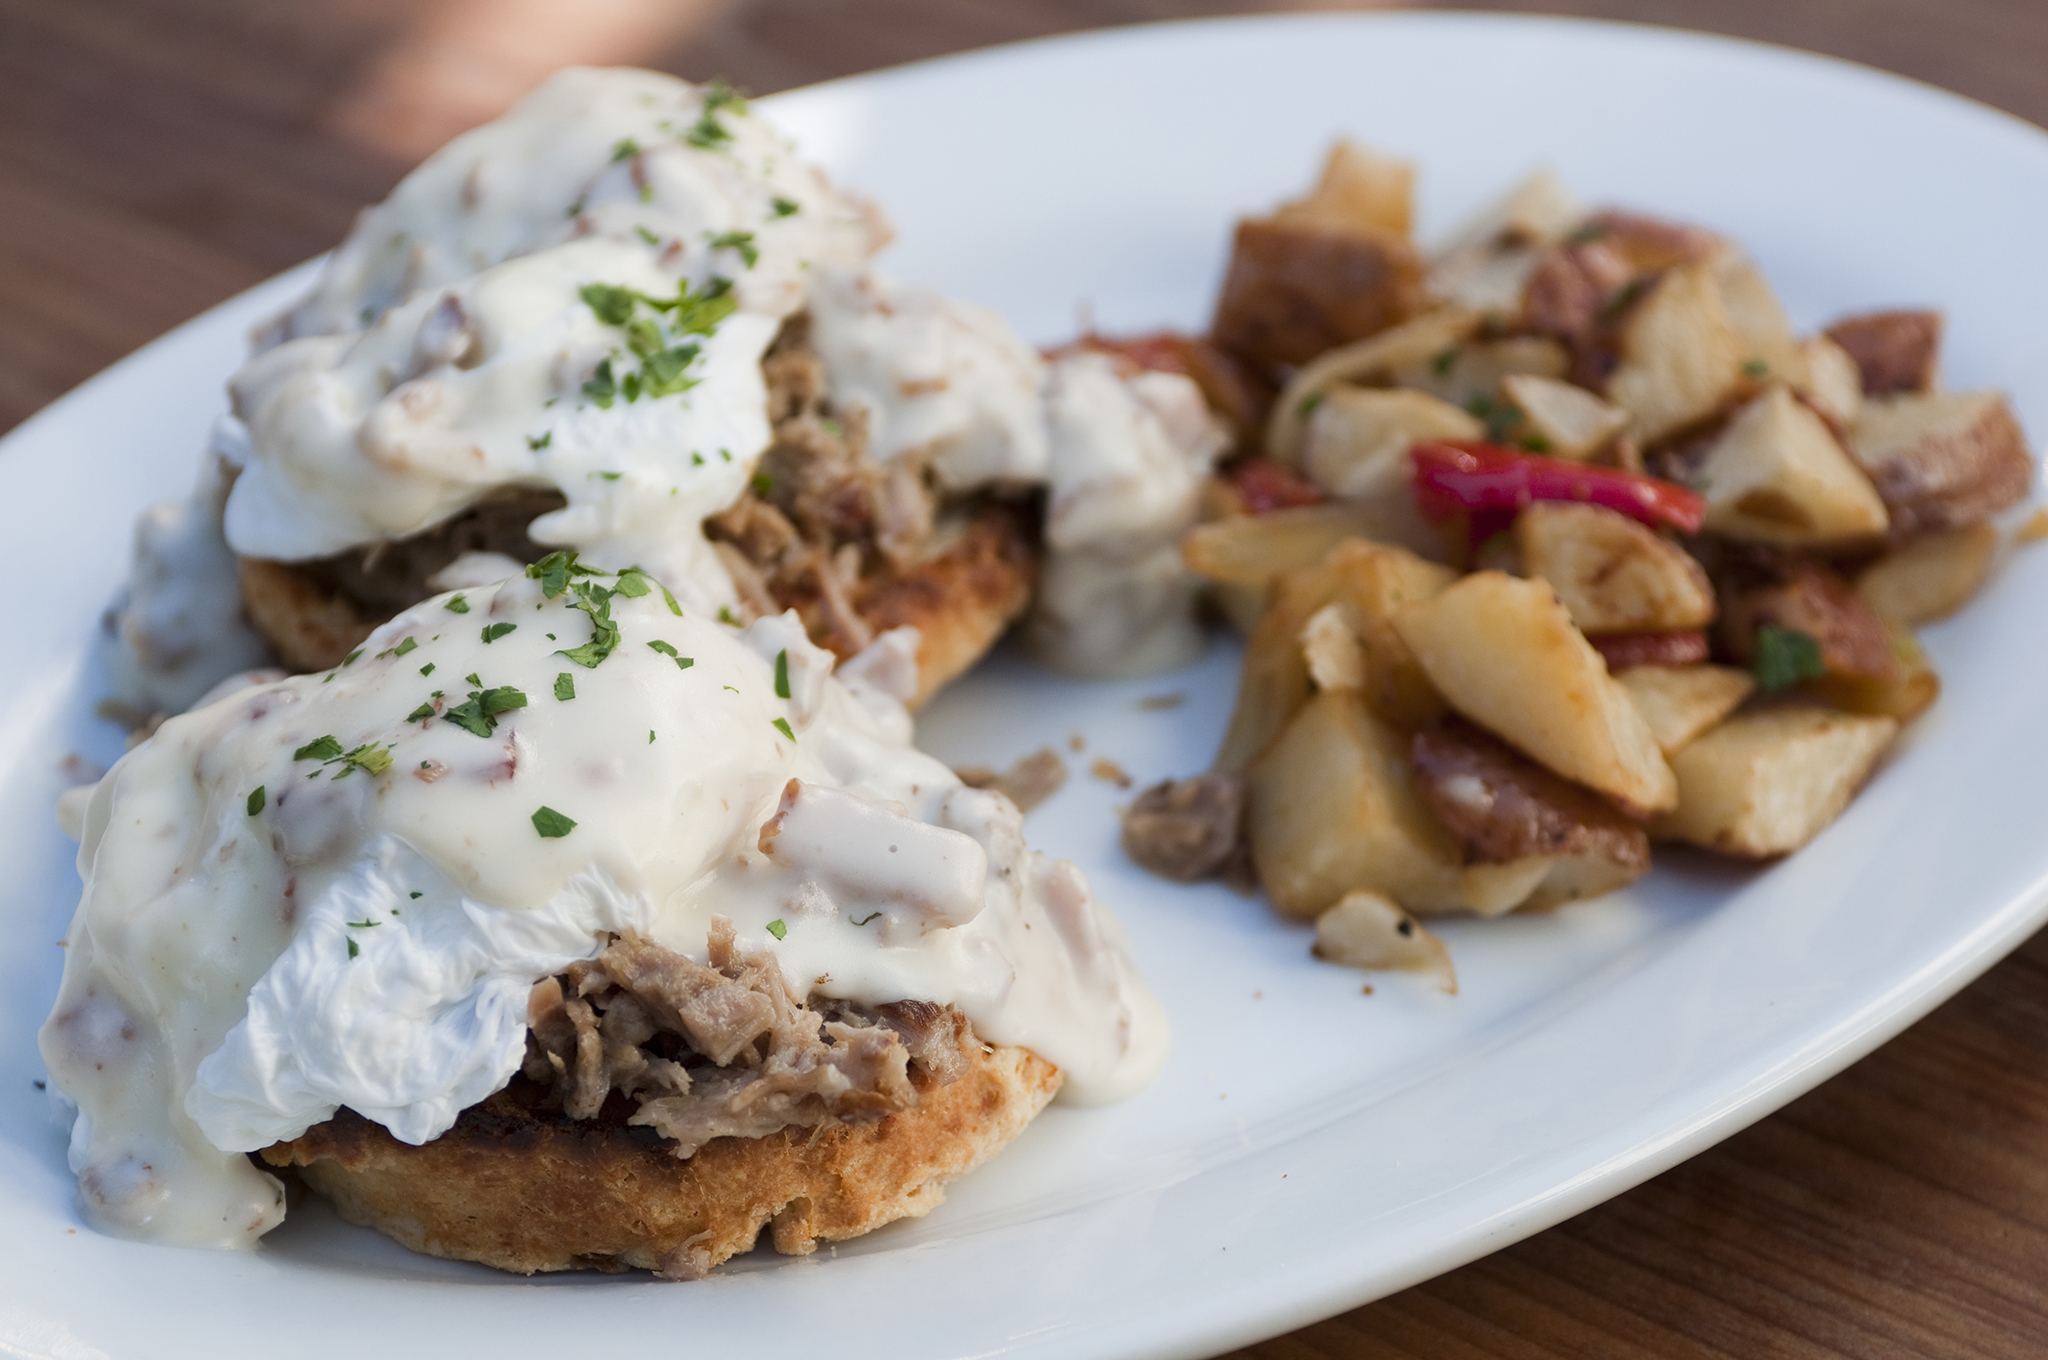 Pulled pork with an Asiago biscuit, poached eggs, country gravy and potatoes at Maximilliano